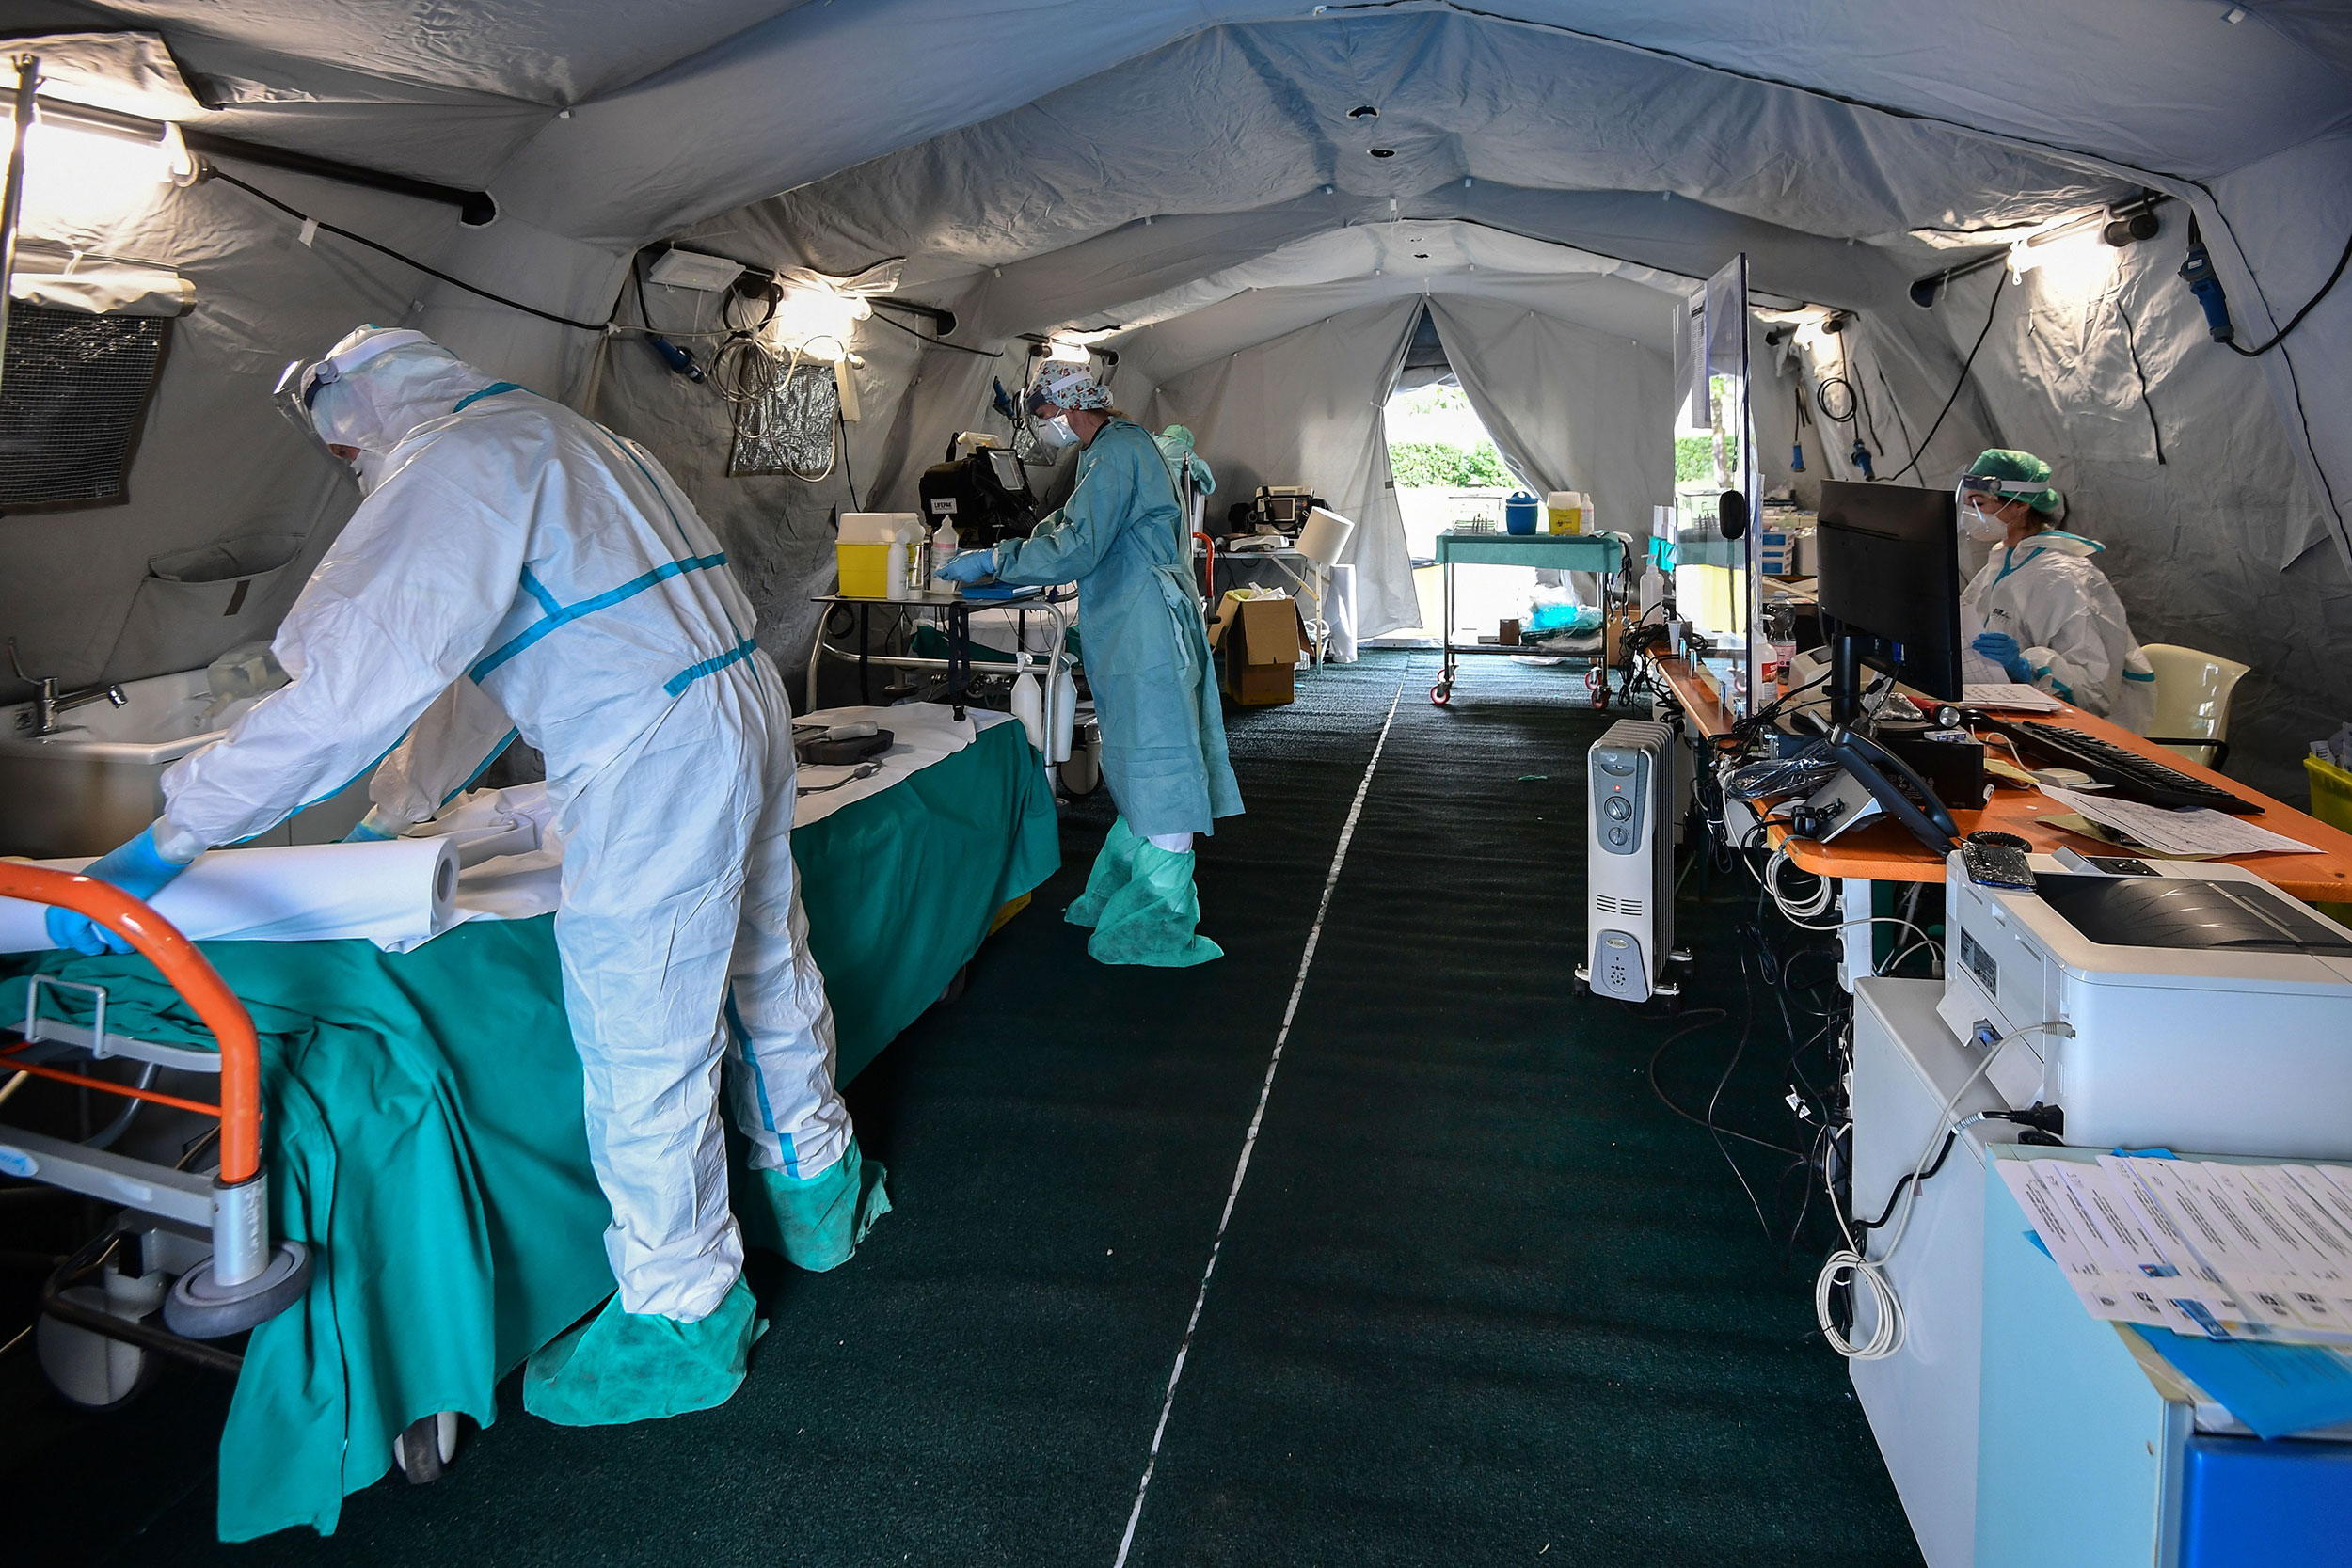 Hospital workers work in a triage tent set up outside of the Brescia hospital in Lombardy, Italy, on March 13.